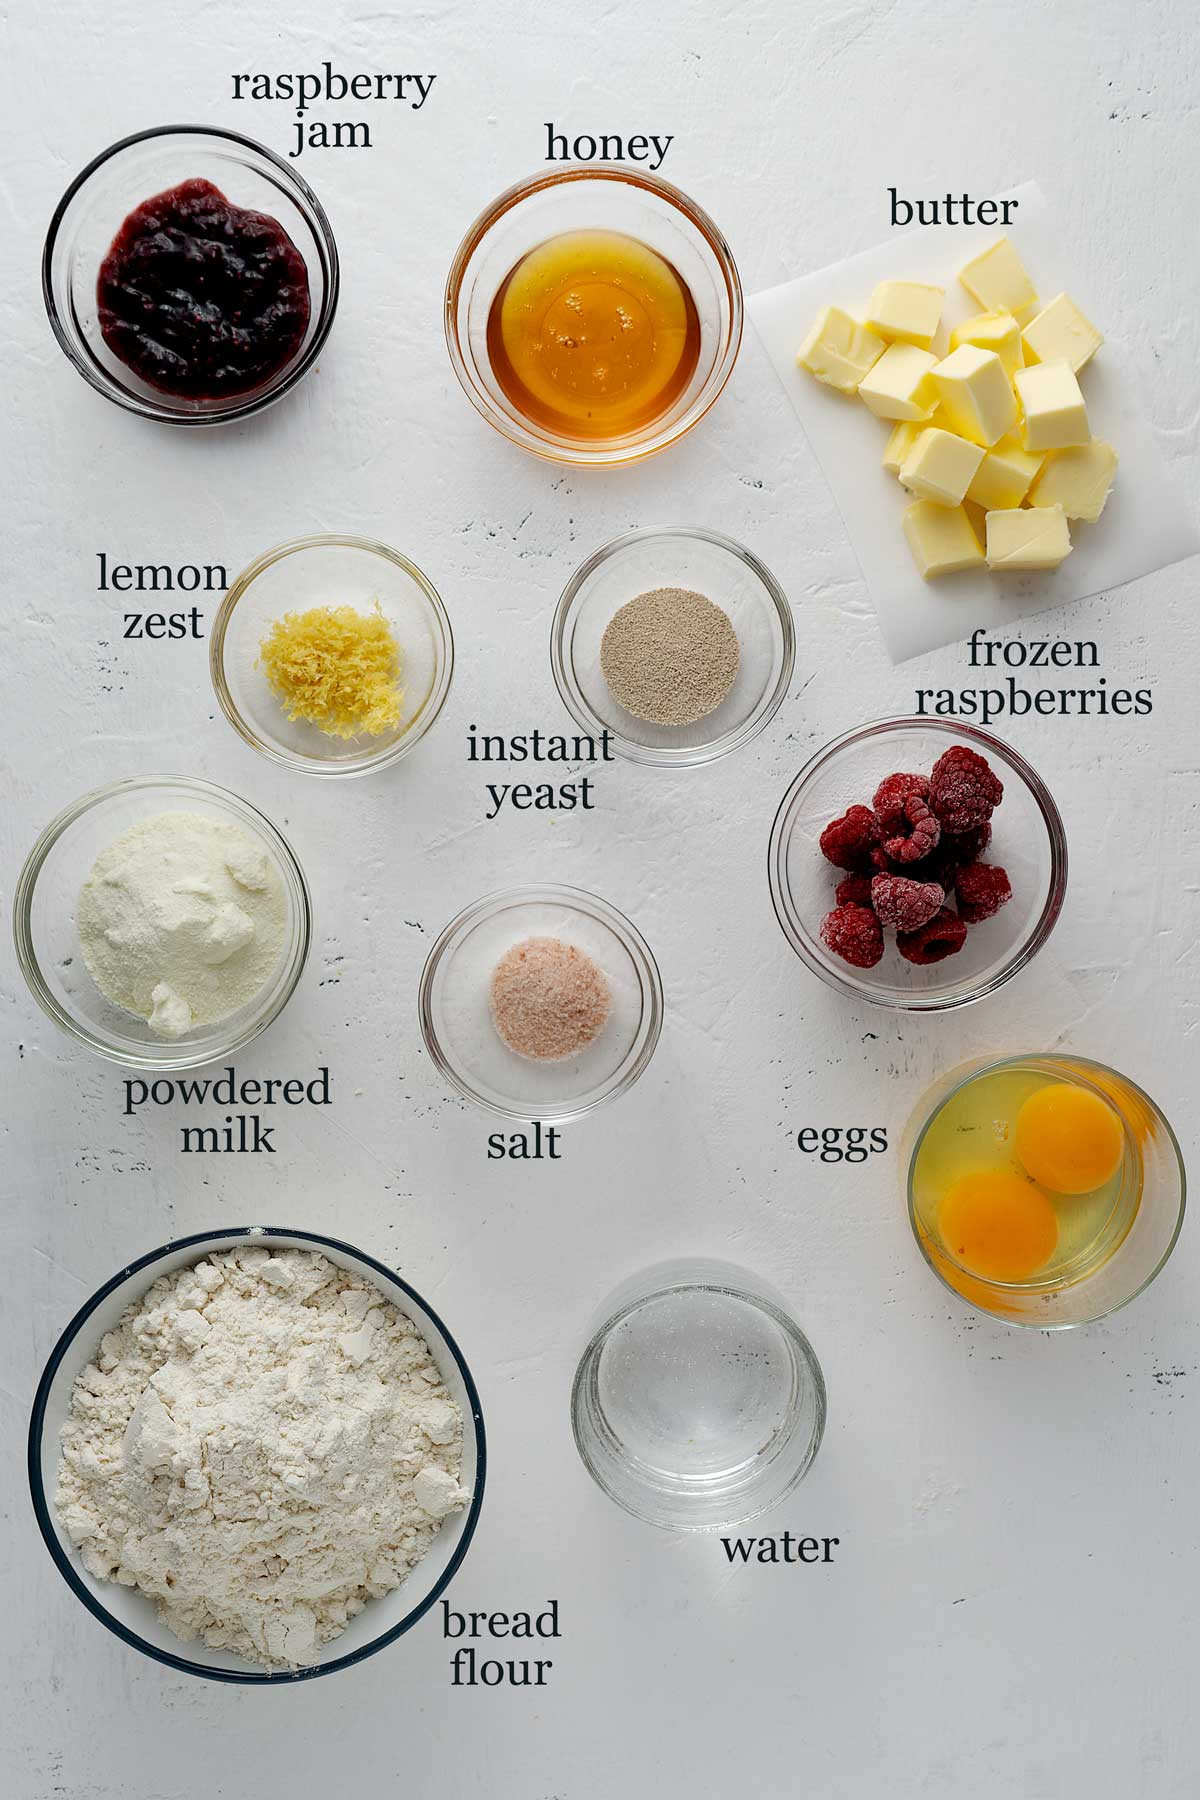 ingredients for raspberry twisted buns.